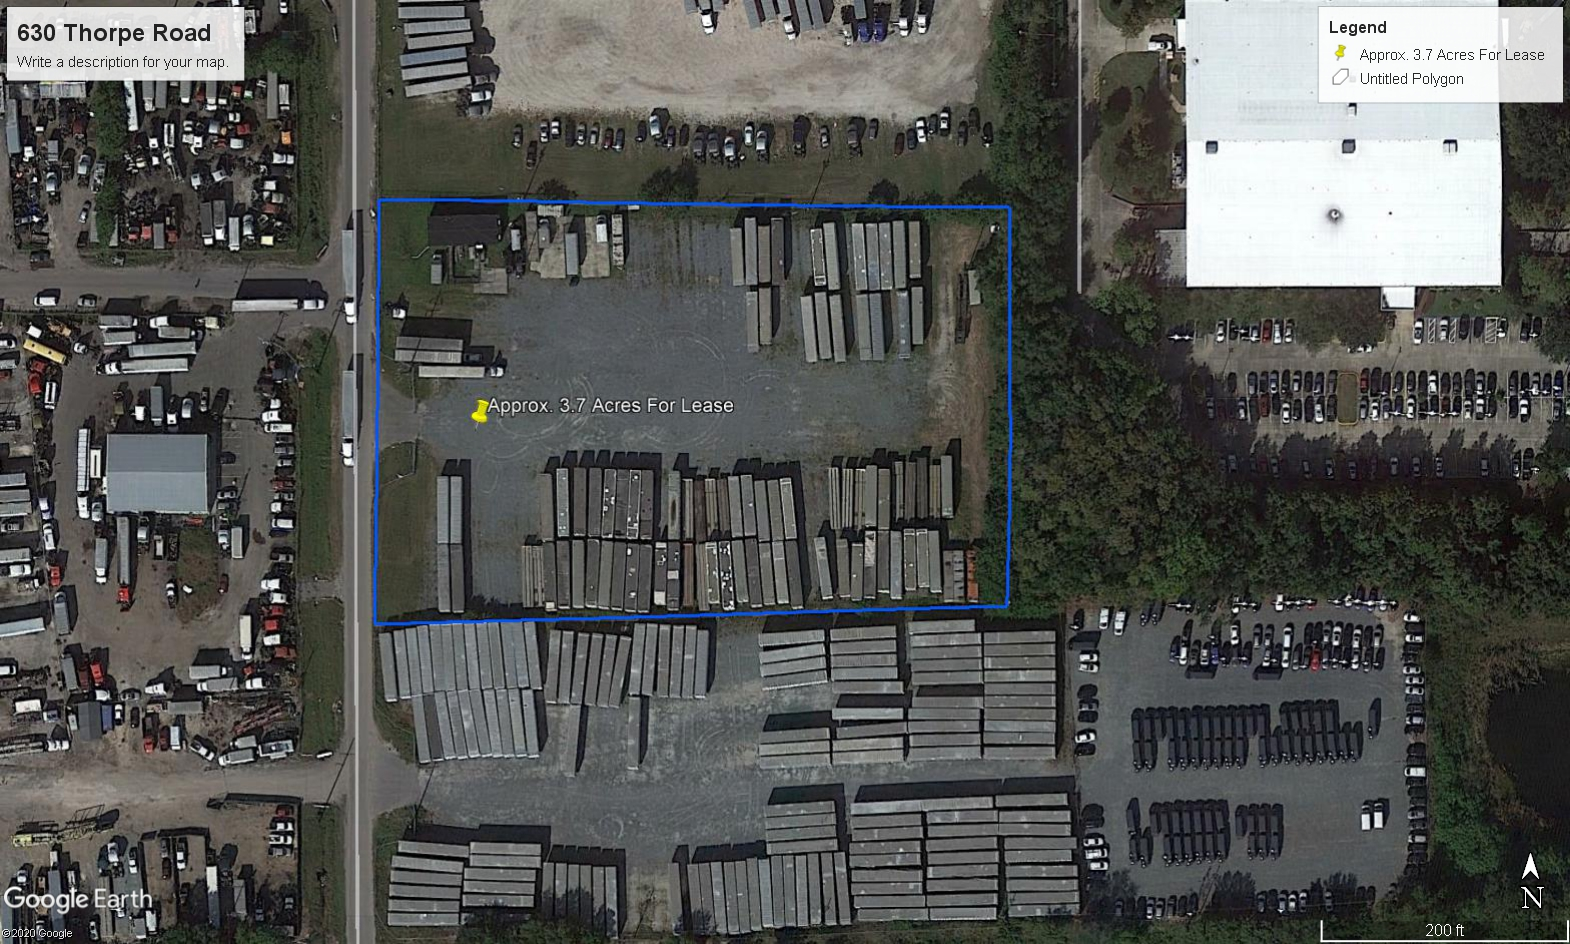 3.73 acre fenced storage yard with office trailer